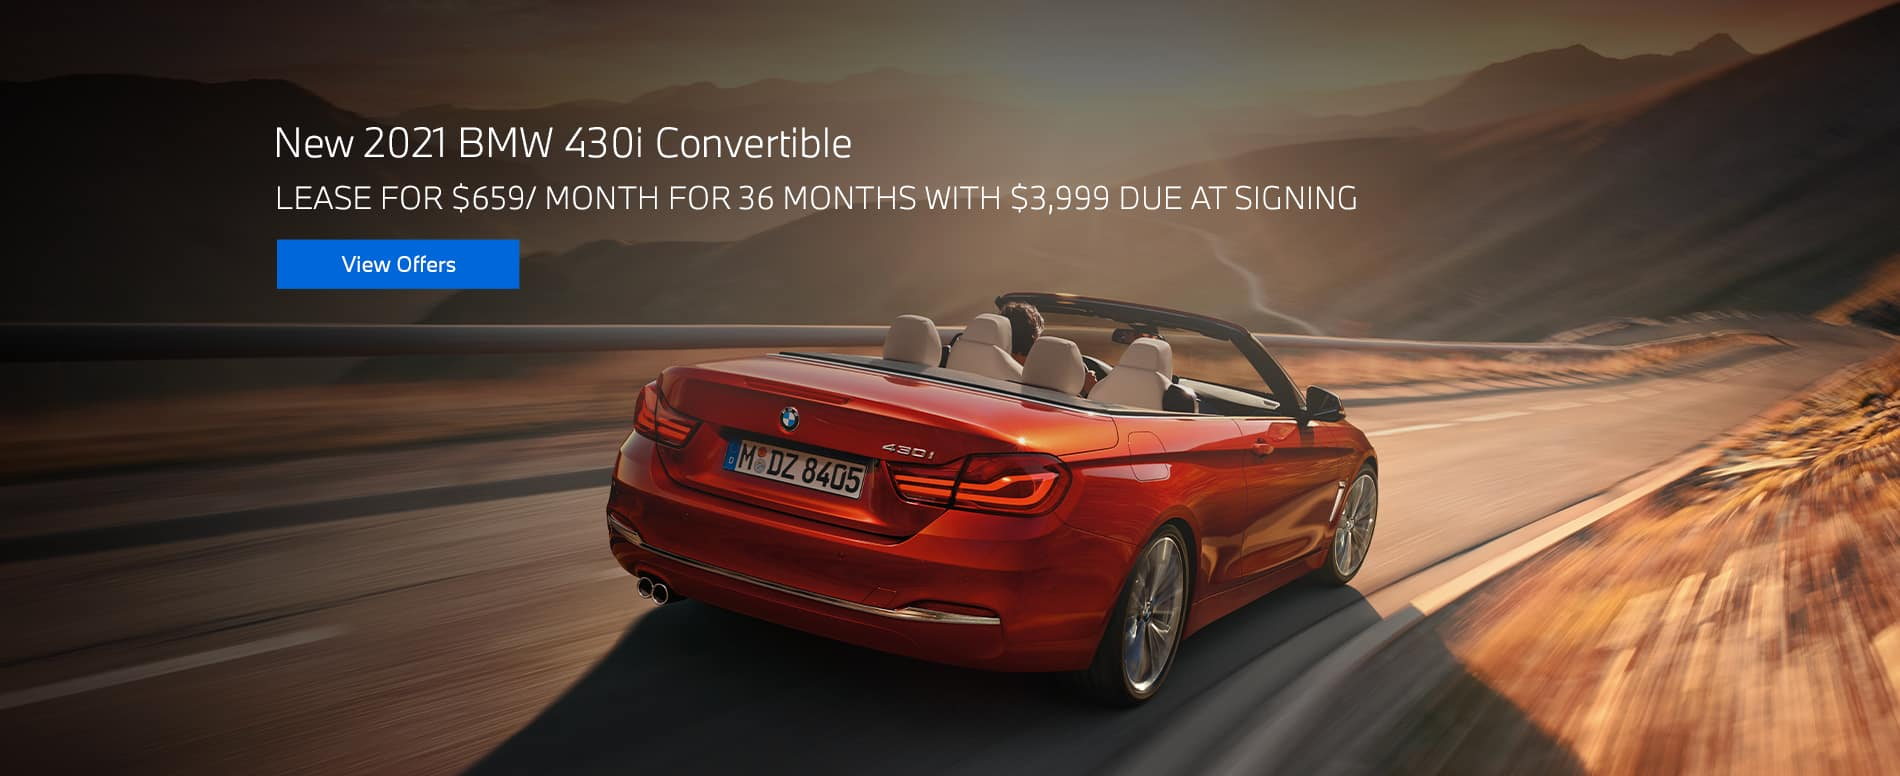 New 2021 BMW 430i Convertible $659/mo. for 36 months $3,999 due at signing